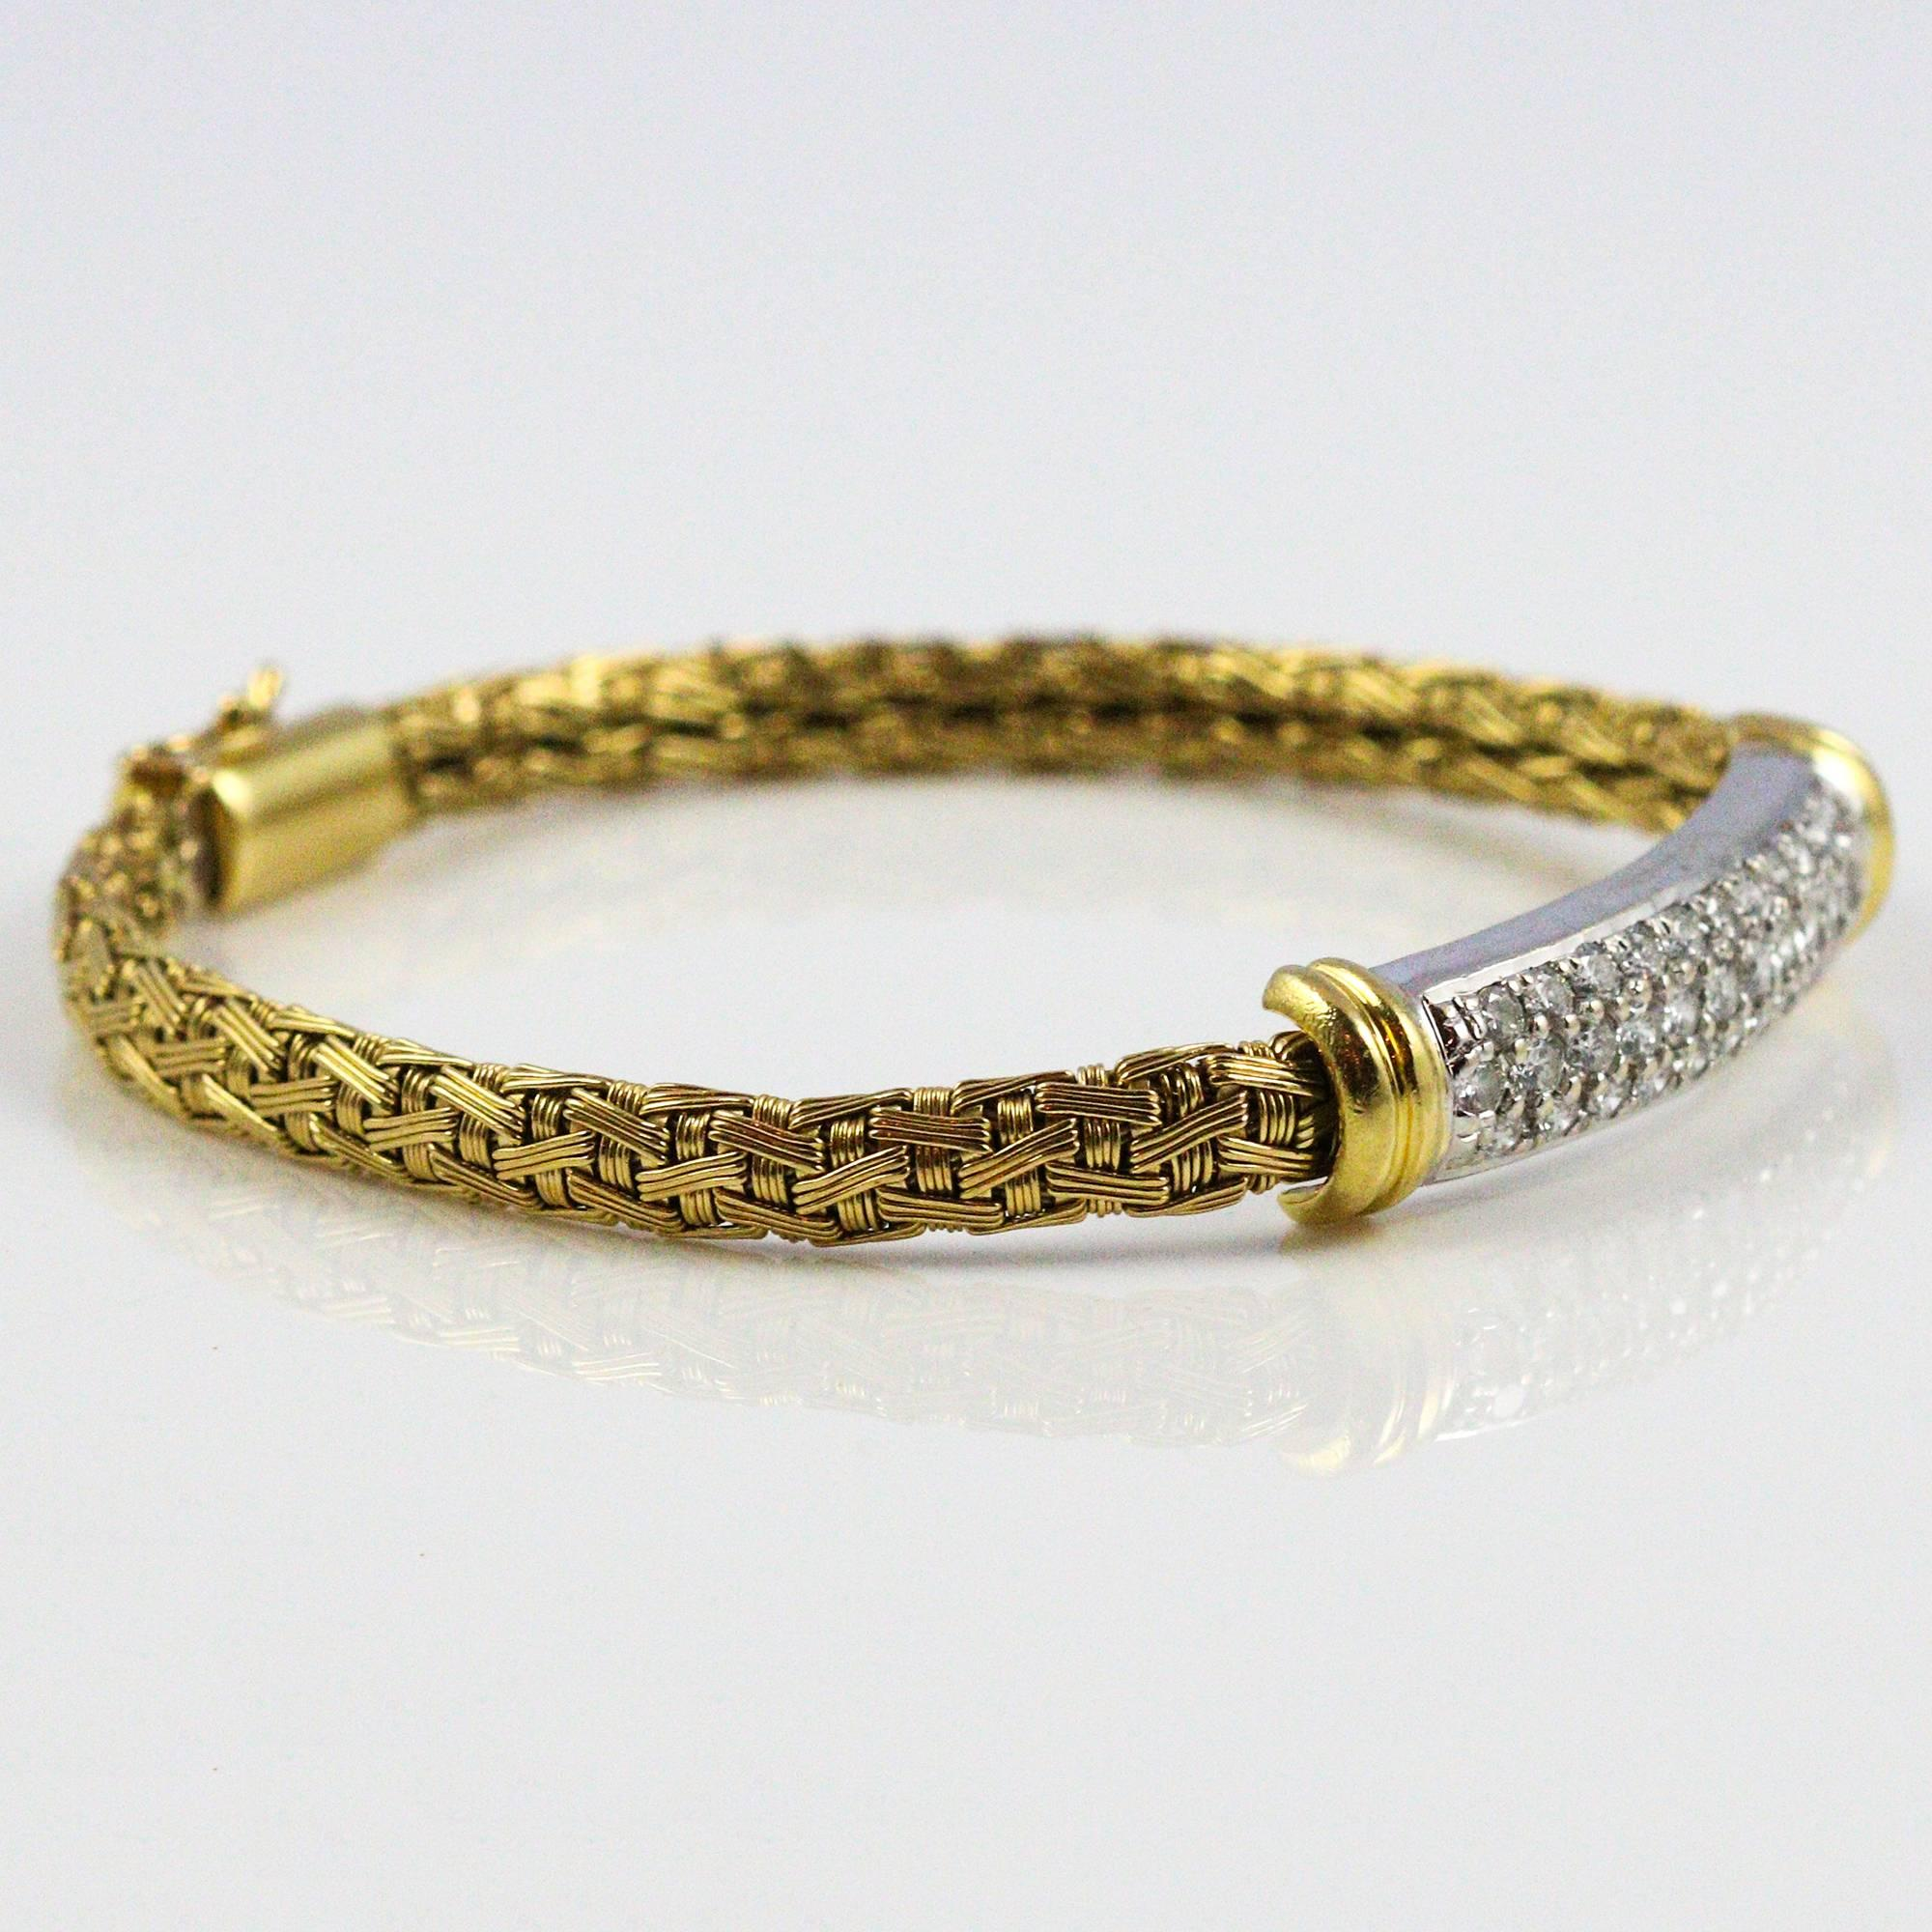 diamond jewelry coin bracelet pave moi singlerow bangle s row lyst women metallic roberto gold bangles pois rose single